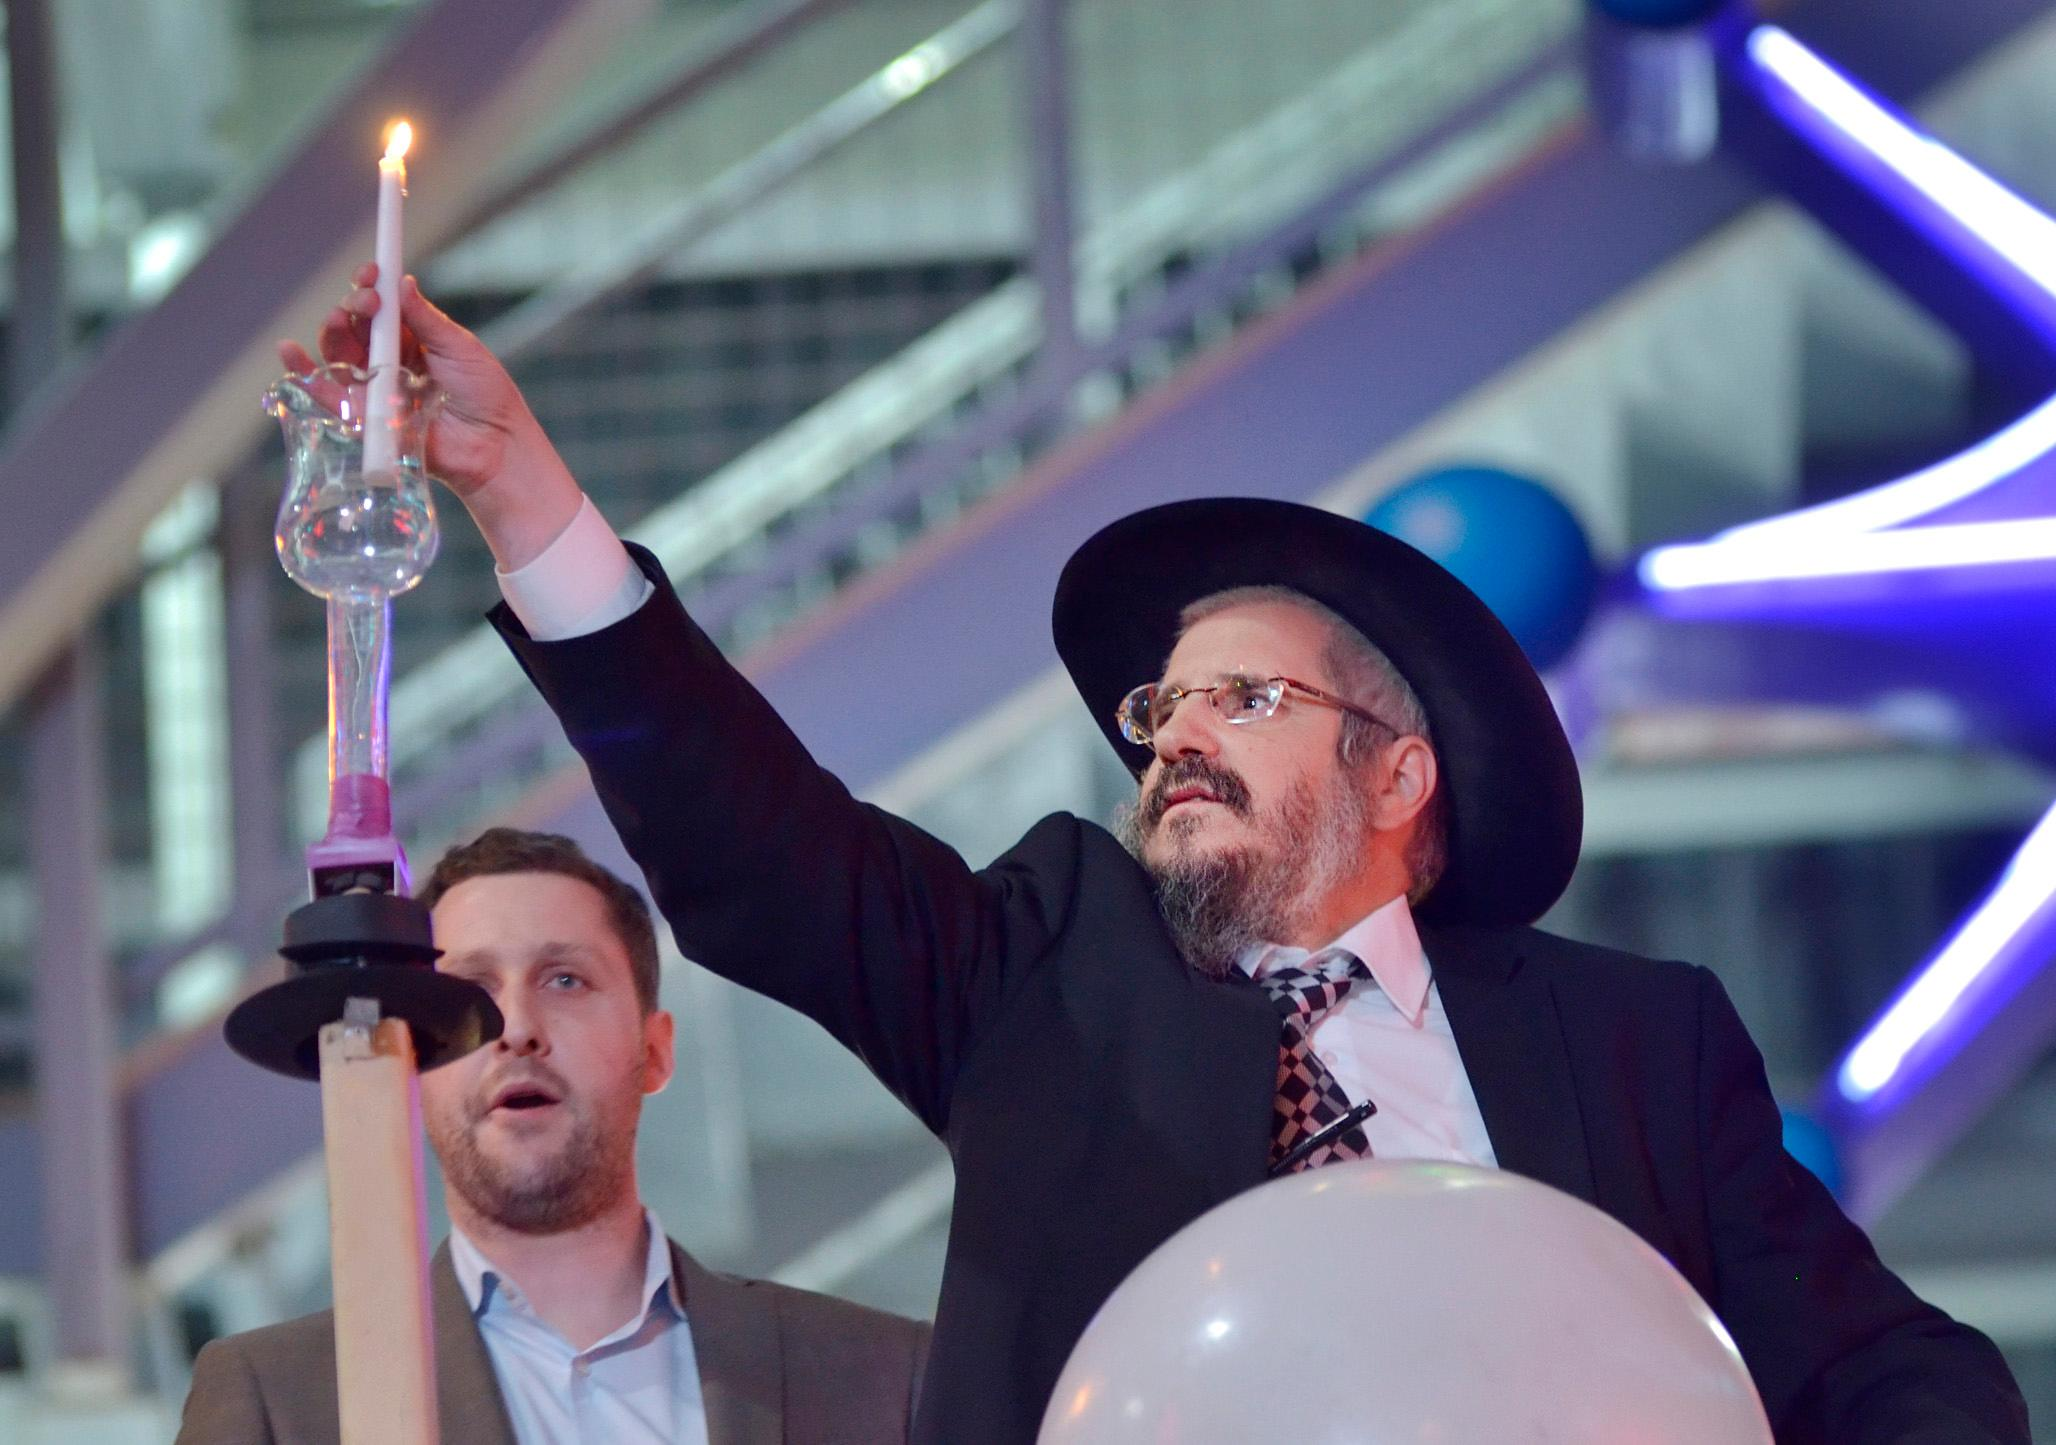 Rabbi Shea Harlig, of the Chabad Jewish Center of Southern Nevada, right, puts a candle into a menorah as Jonathan Jossel, CEO of the Plaza hotel-casino, looks on. Las Vegas Mayor Carolyn Goodman and Patrick Hughes, President and CEO of Fremont Street Experience, were also on hand for the first night of Hanukkah which was marked with the lighting of a 20-foot Grand Menorah on Fremont Street in downtown Las Vegas on Tuesday, Dec. 12, 2017. CREDIT: Bill Hughes/Las Vegas News Bureau